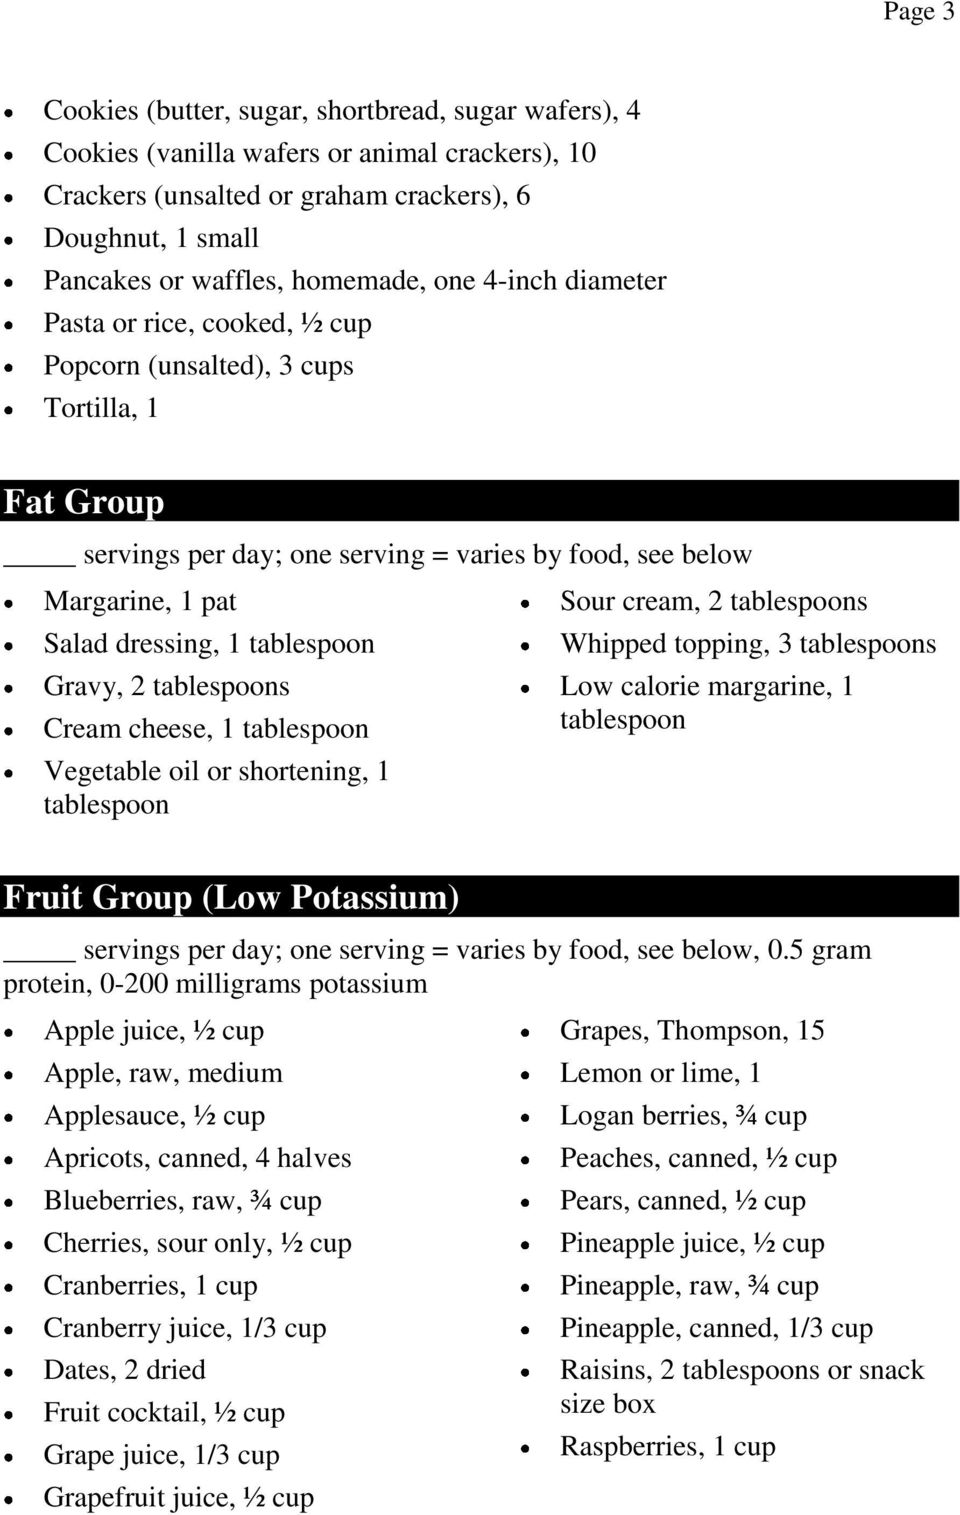 tablespoon Gravy, 2 tablespoons Cream cheese, 1 tablespoon Vegetable oil or shortening, 1 tablespoon Sour cream, 2 tablespoons Whipped topping, 3 tablespoons Low calorie margarine, 1 tablespoon Fruit